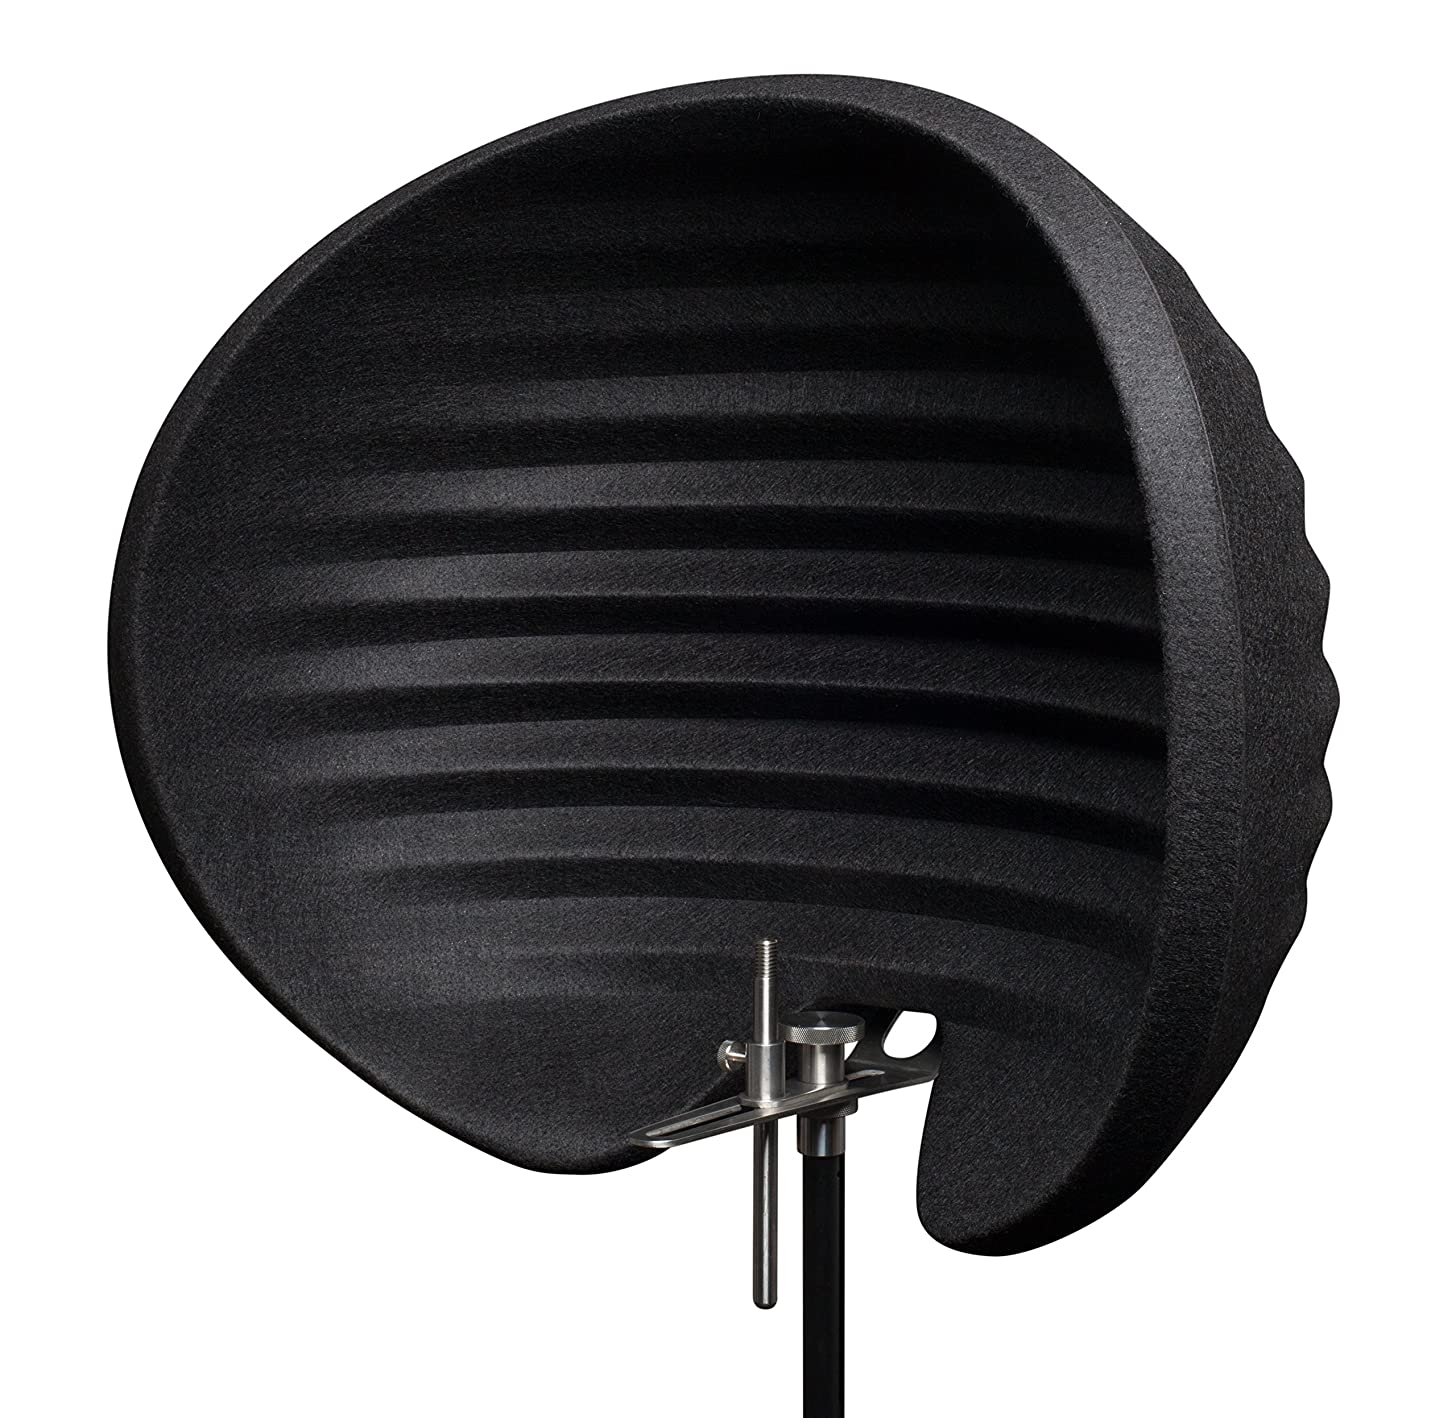 Aston Microphones Halo Portable Microphone Reflection Filter, Black